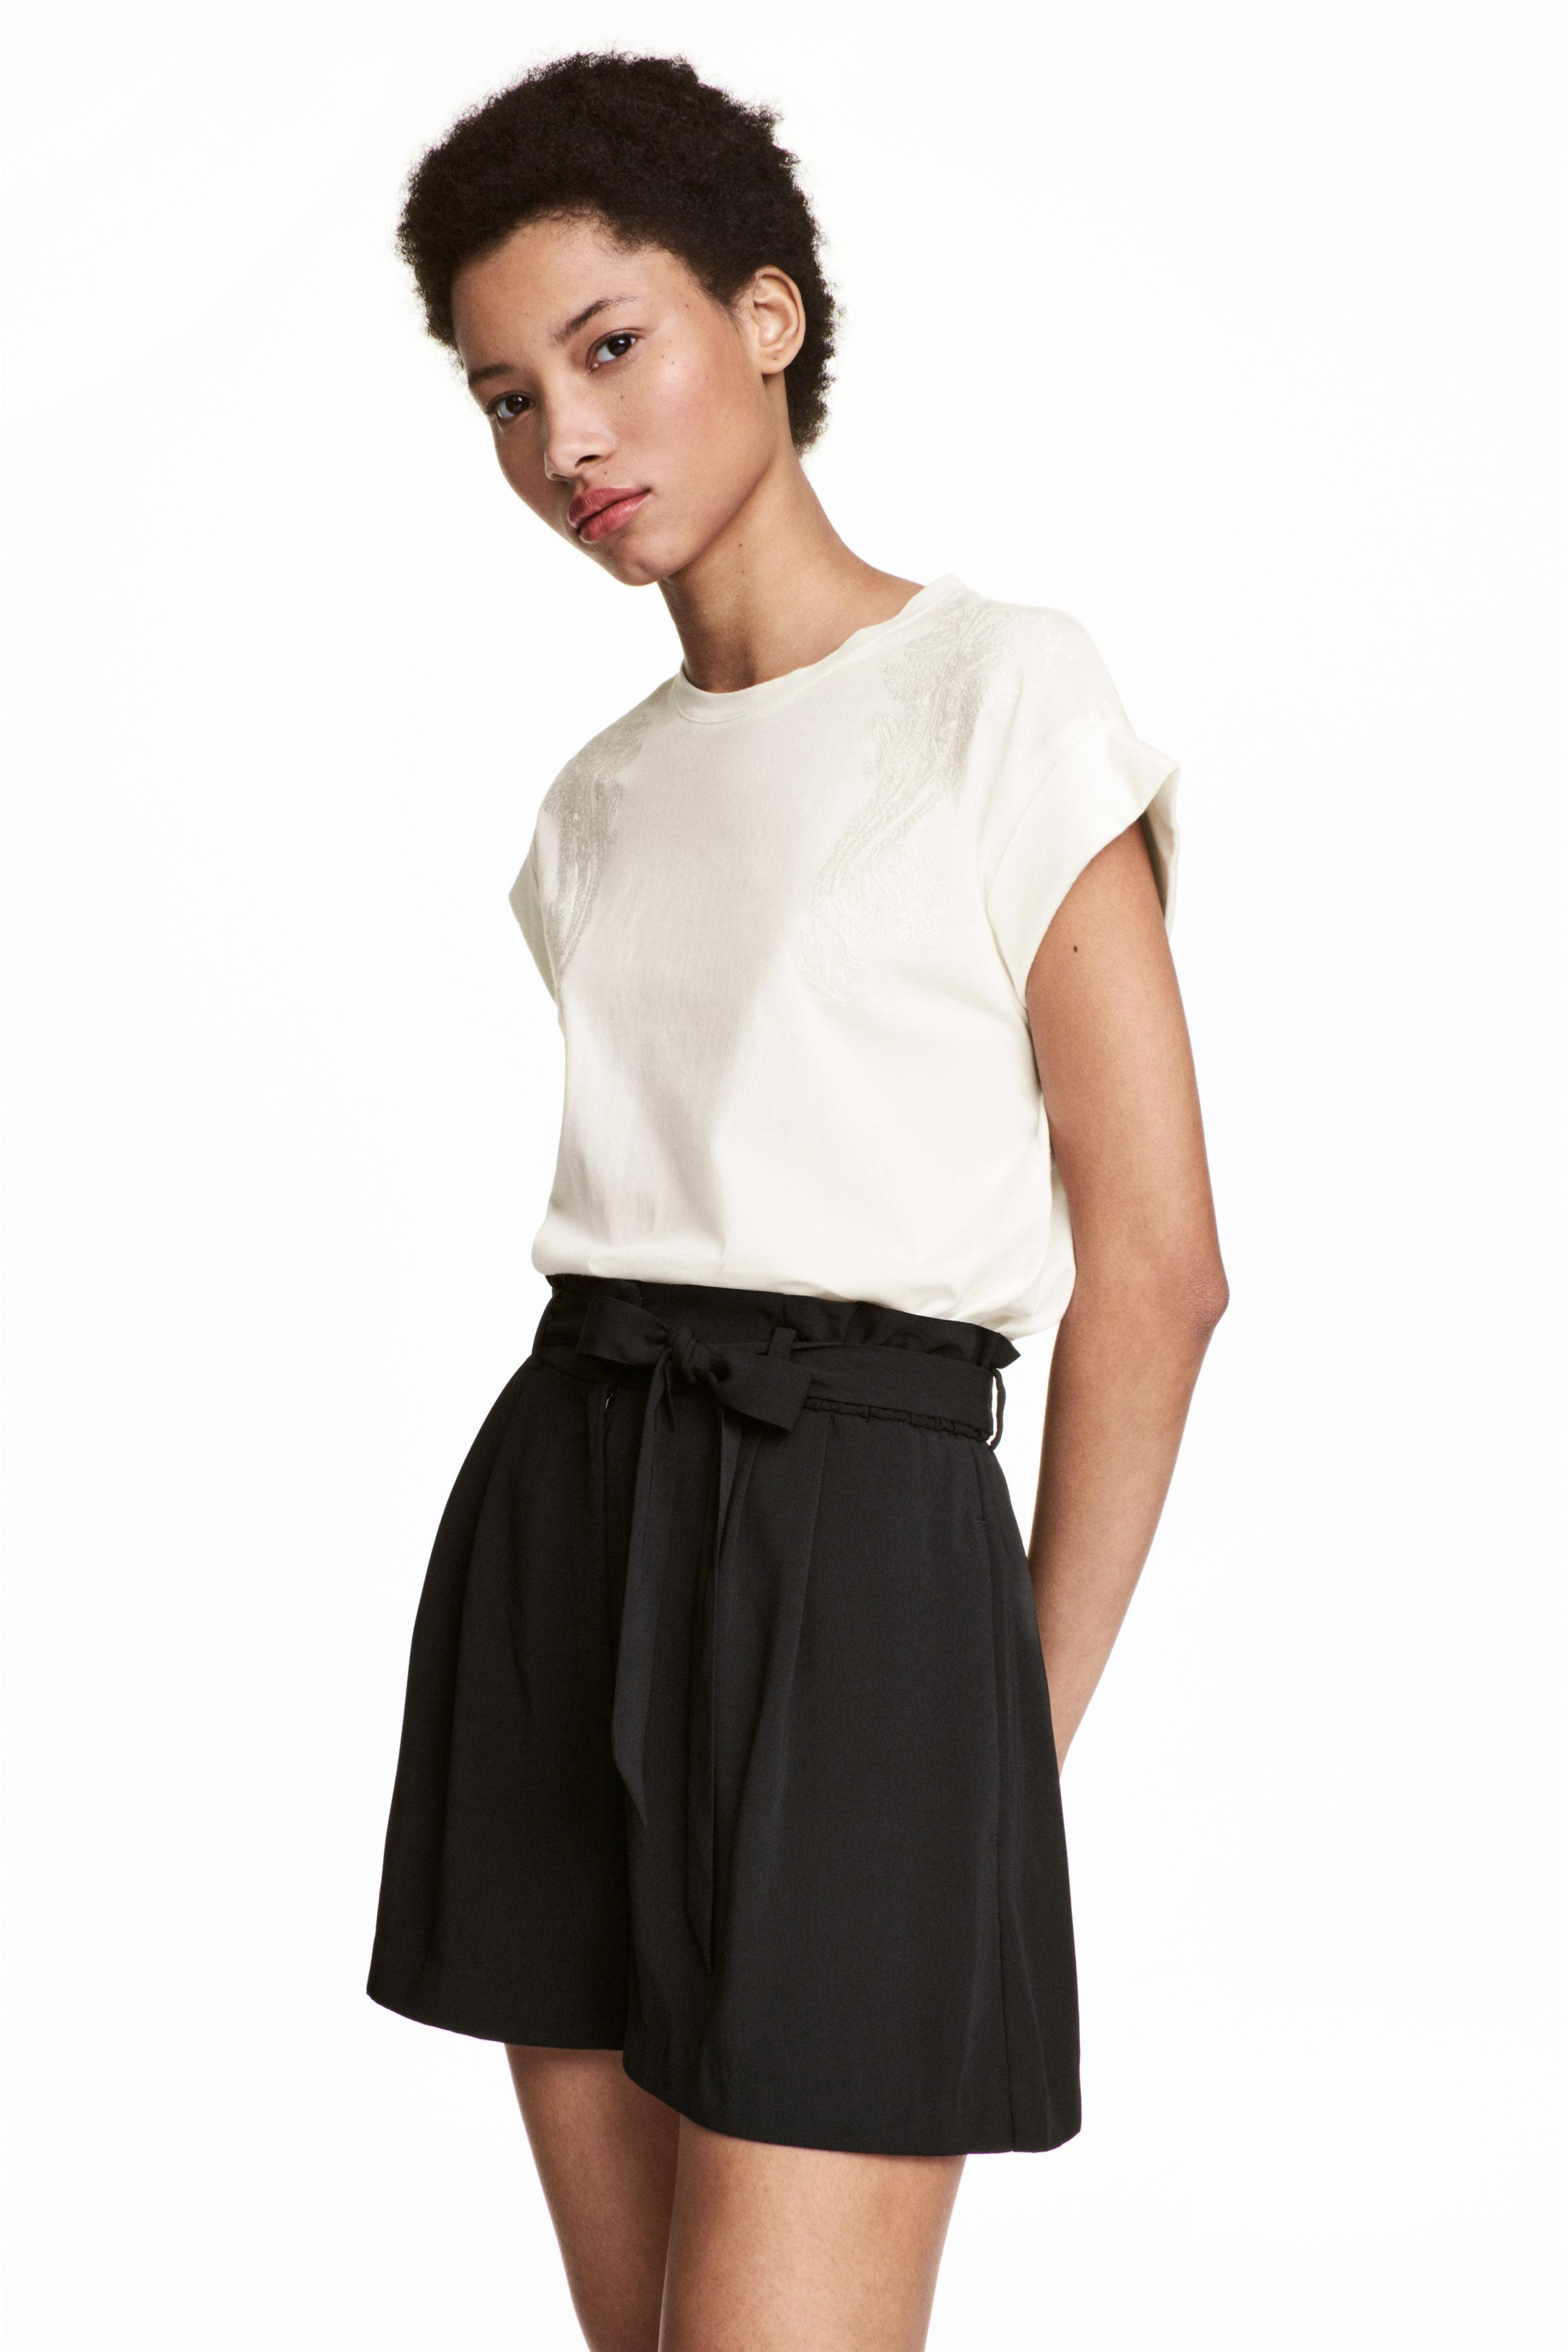 H&M. Women's White Embroidered Top